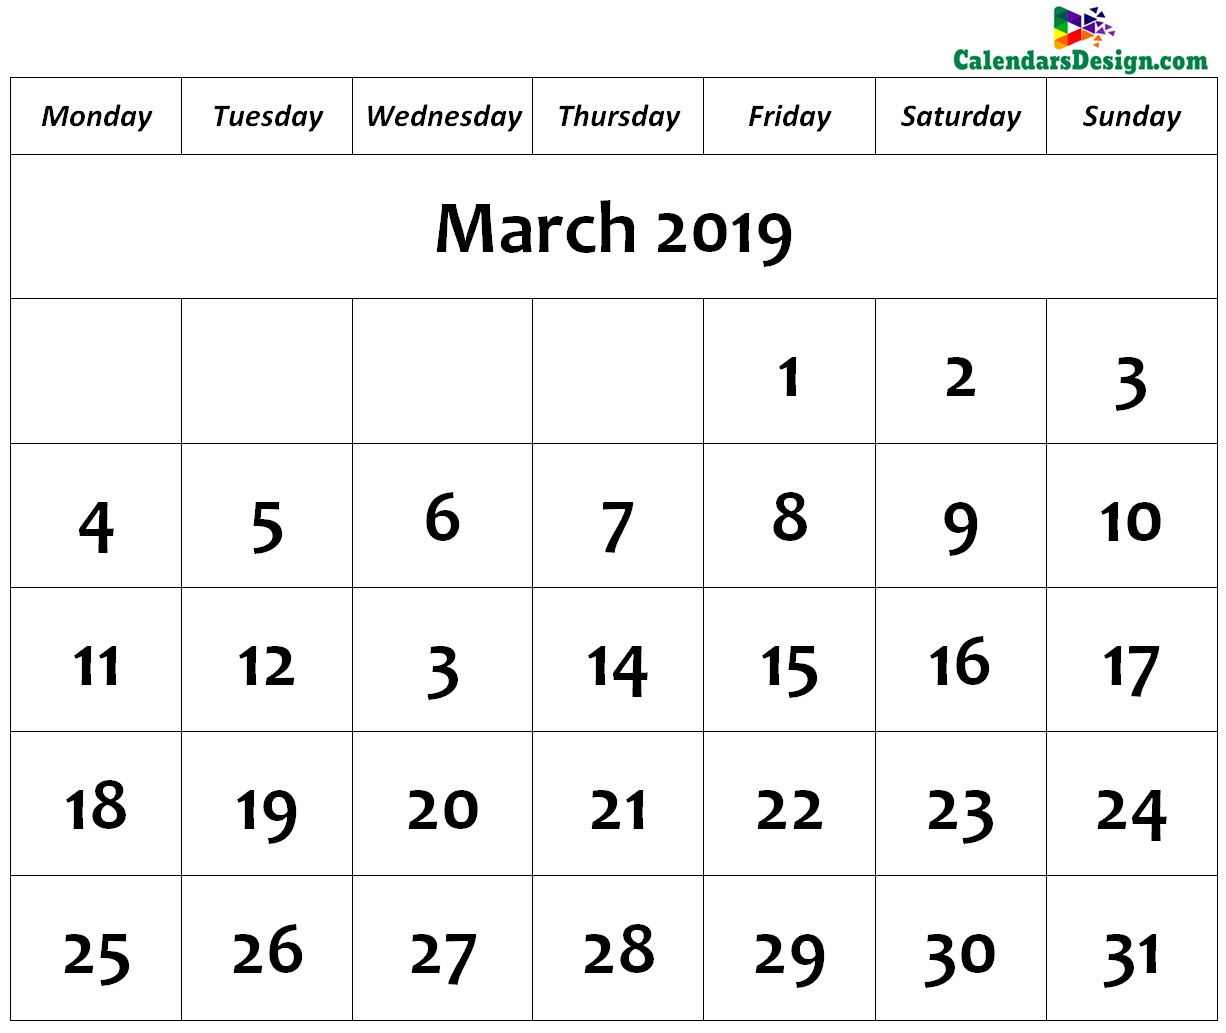 Print March 2019 Calendar in Page Format